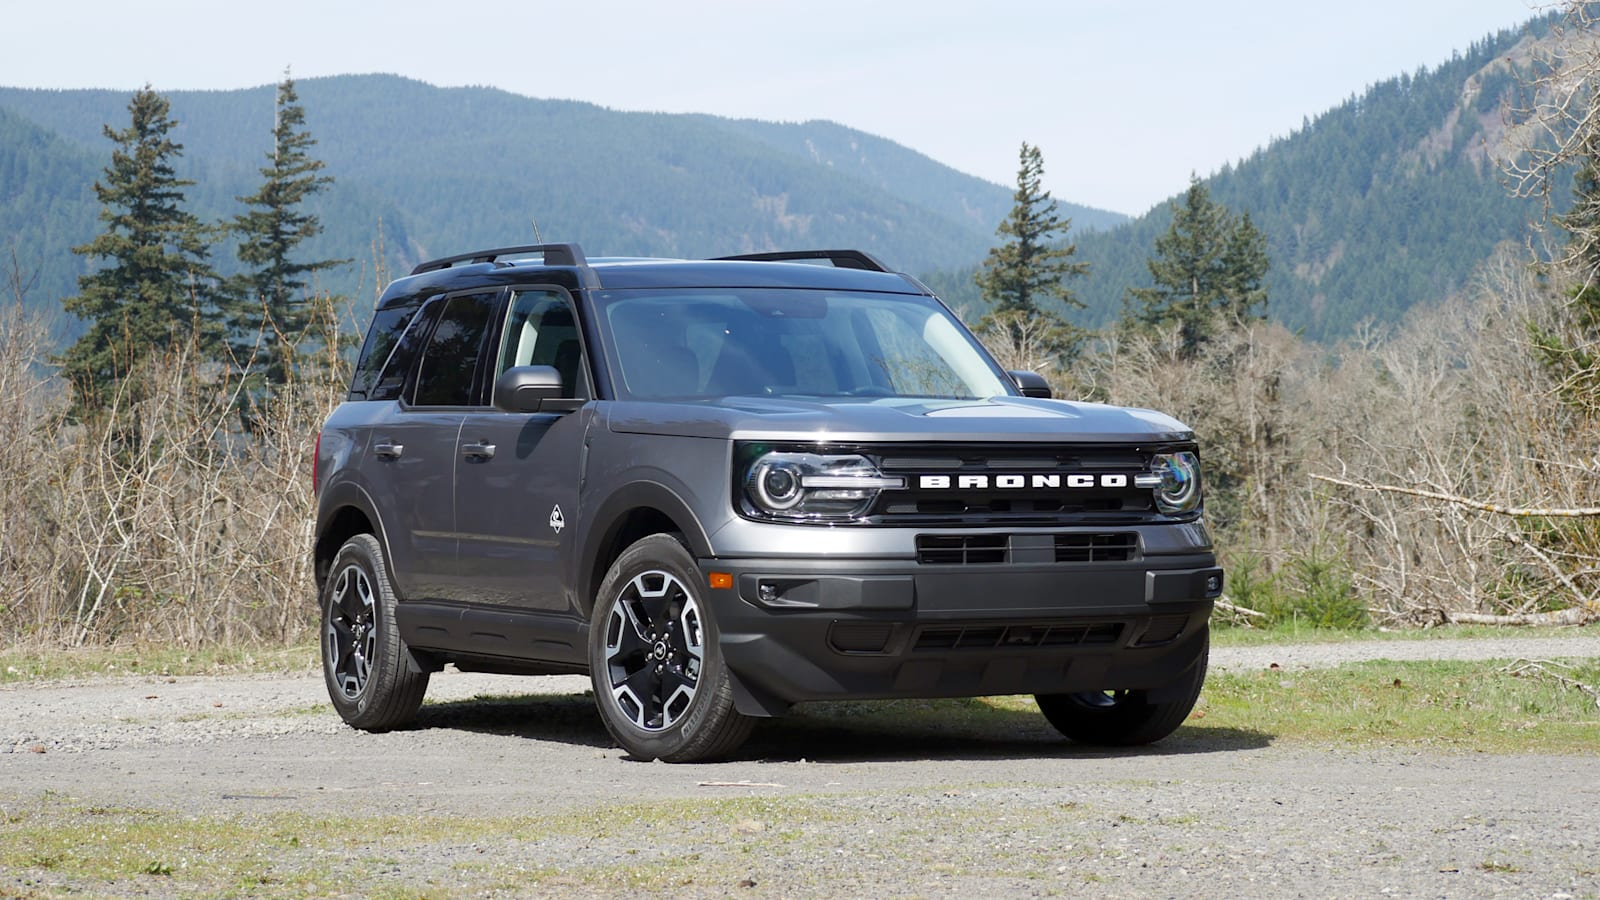 2021 Ford Bronco Sport Outer Banks front in gray